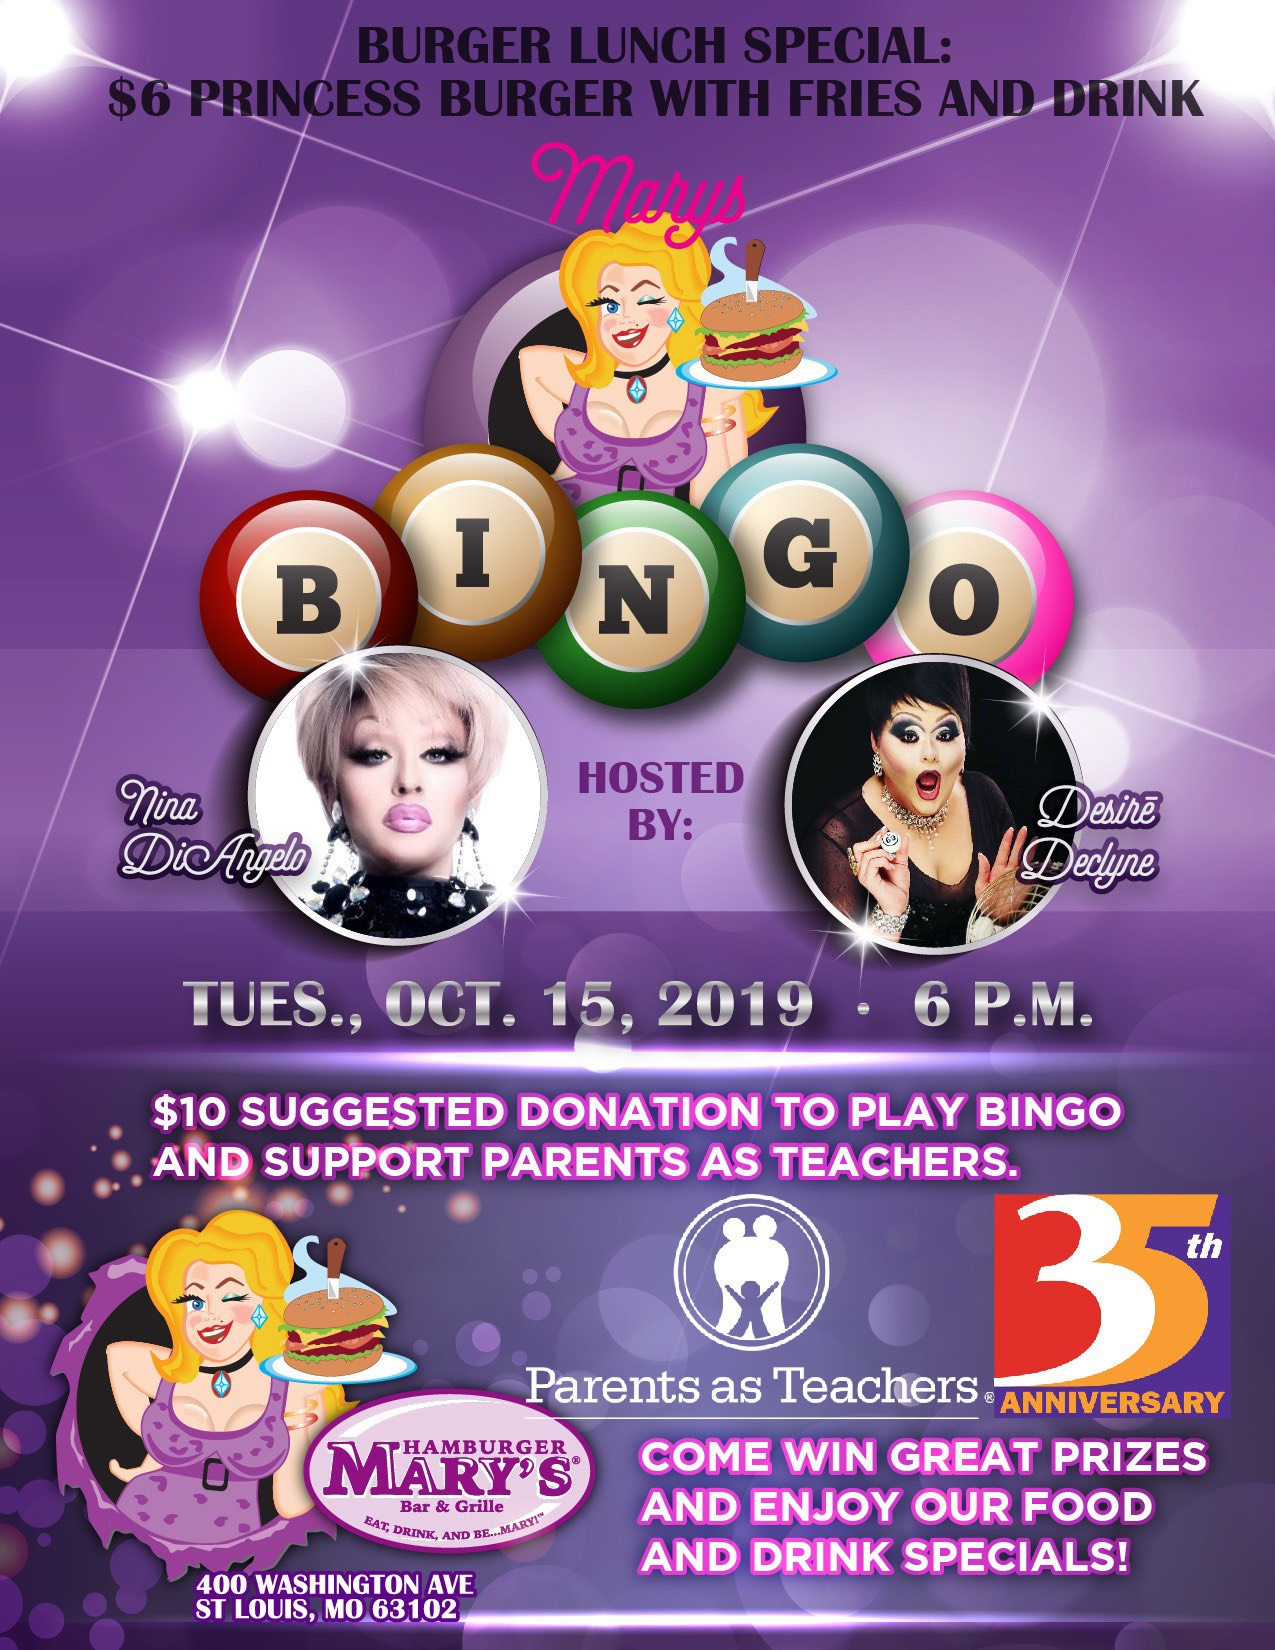 Hamburger Mary's Bingo, Tuesday, October 15, 2019 at 6 p.m. $10 suggested donation to play bingo and support Parents as Teachers.